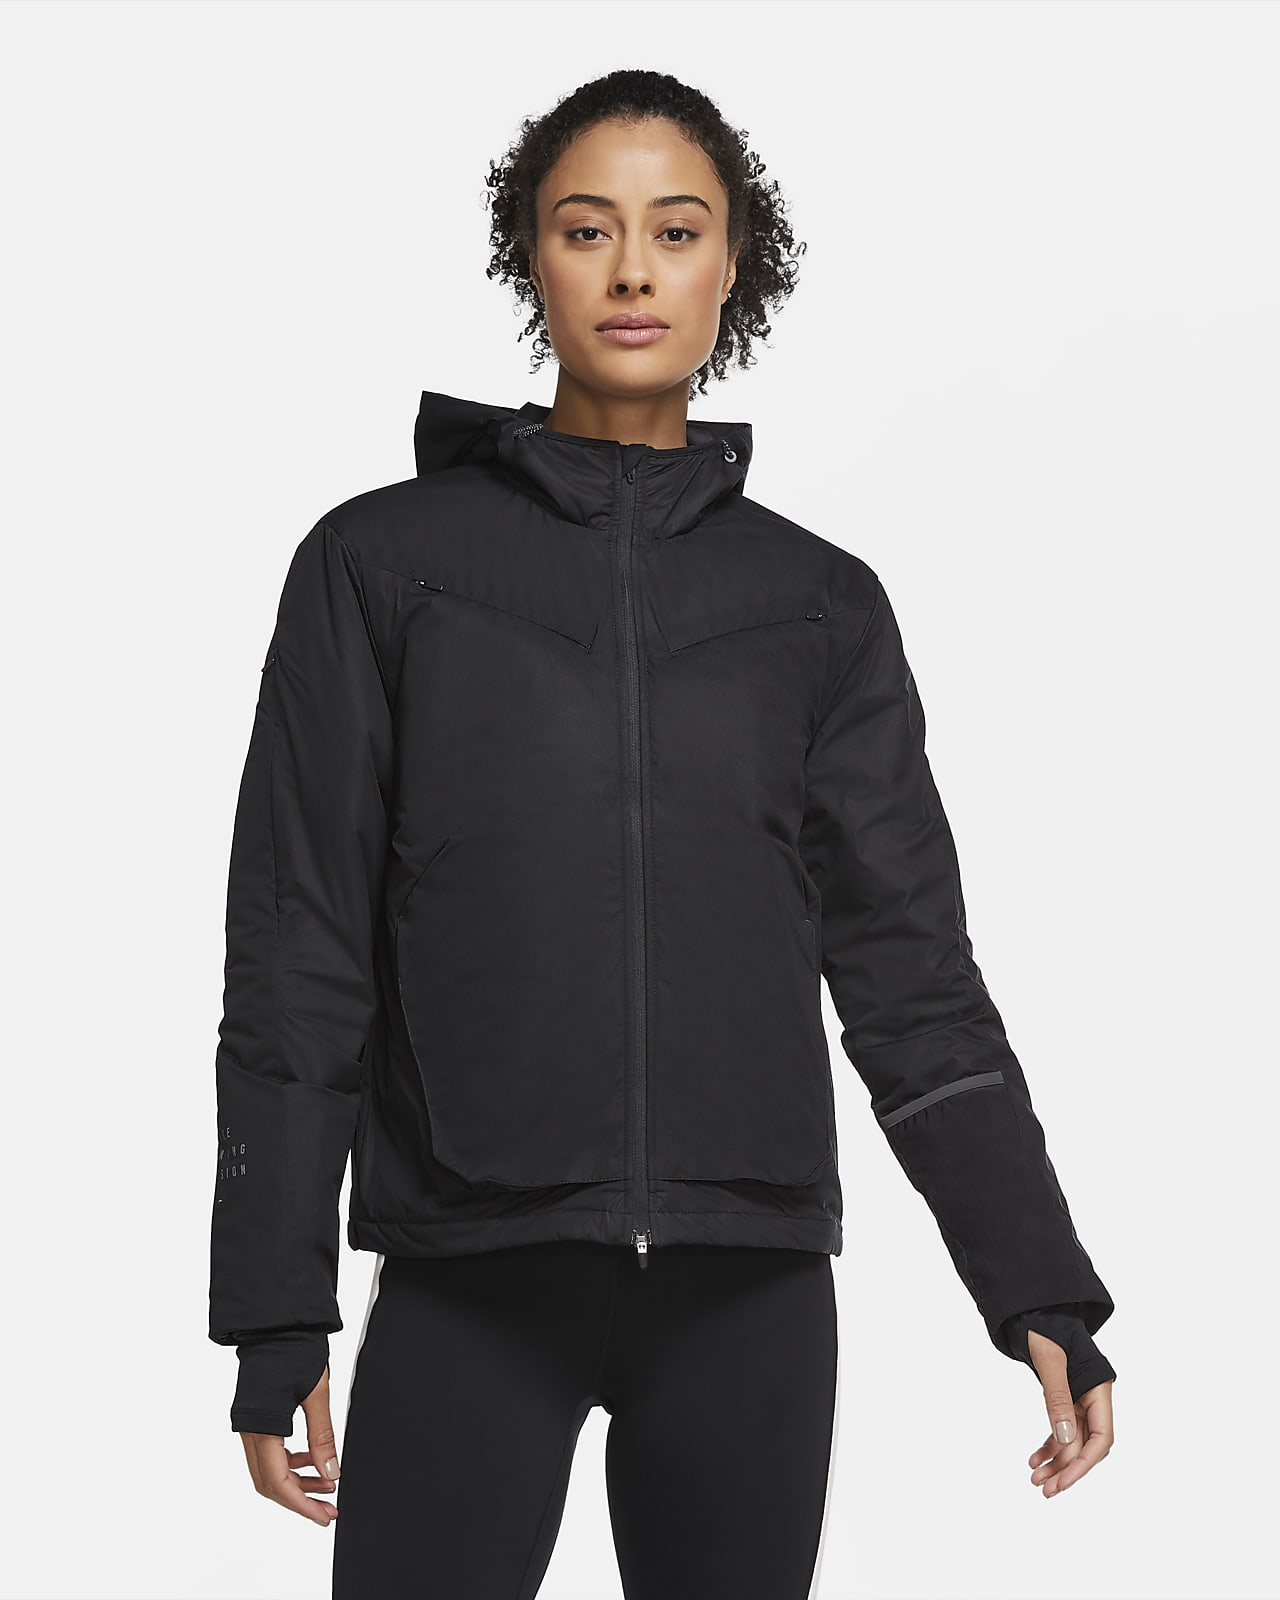 Nike Run Division Women's Dynamic Vent Running Jacket